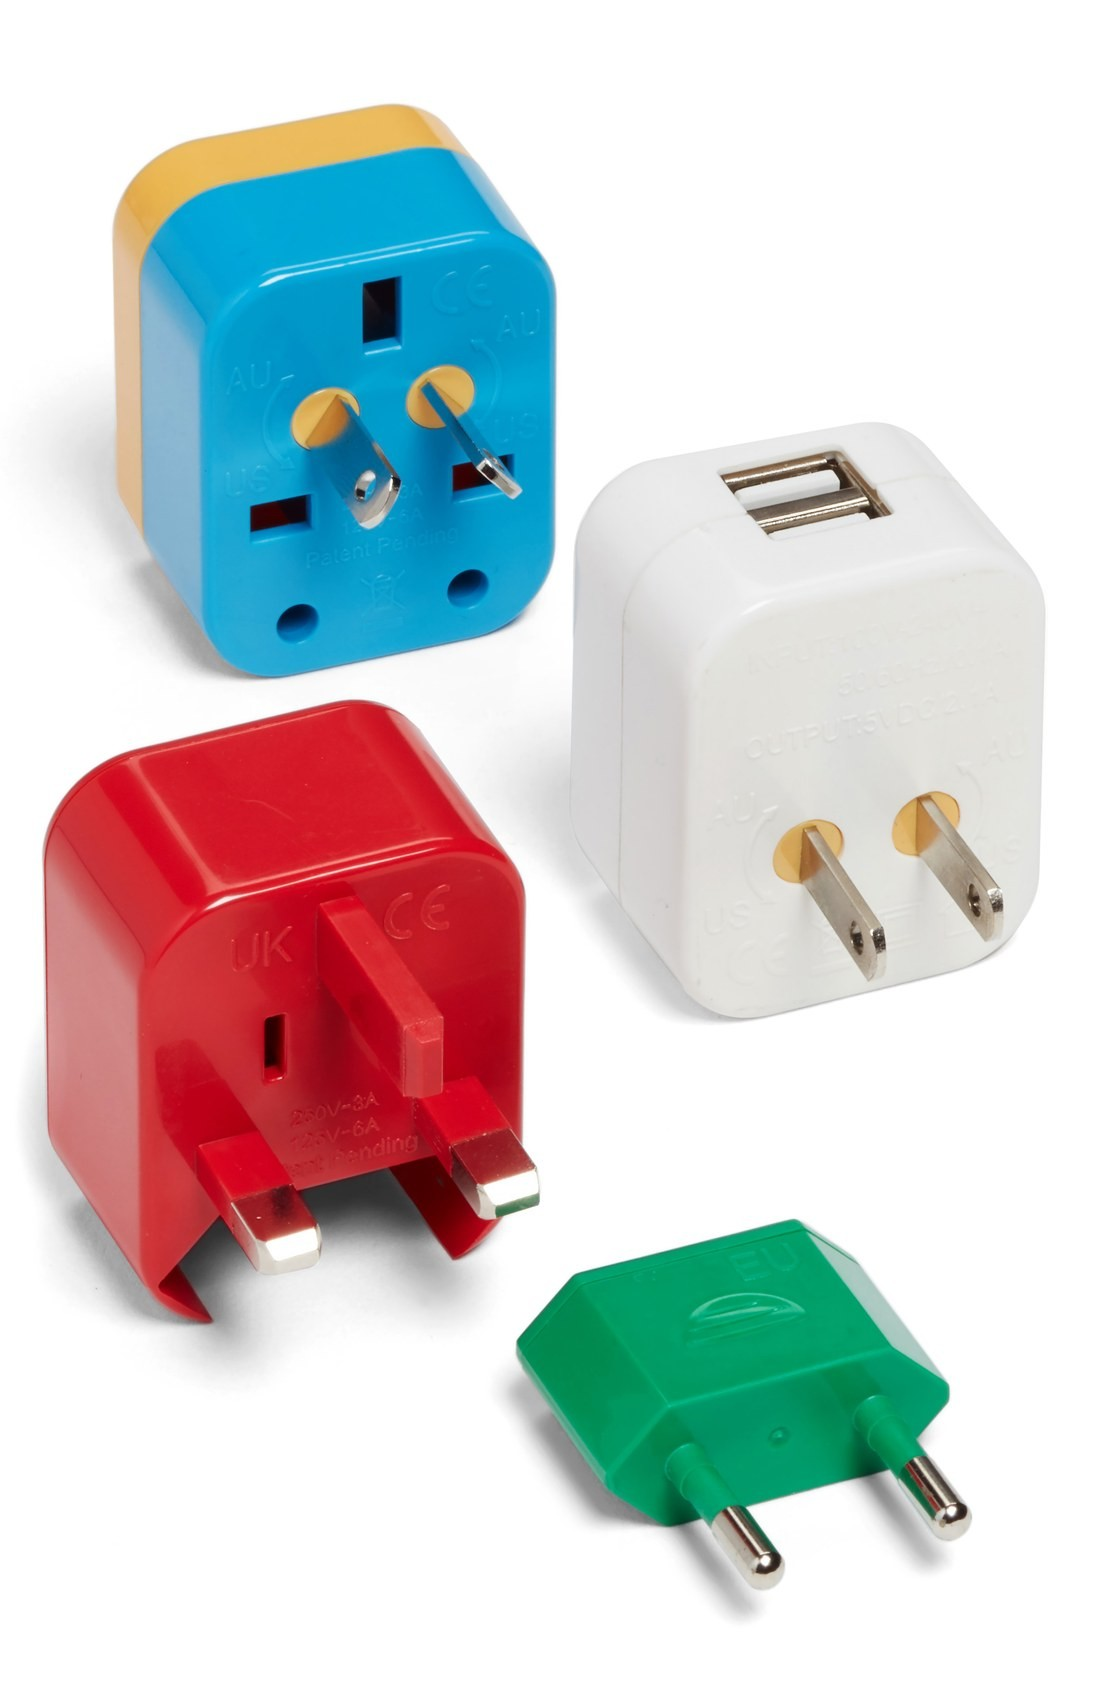 Travel Gift Ideas: 5-in-1 adapter